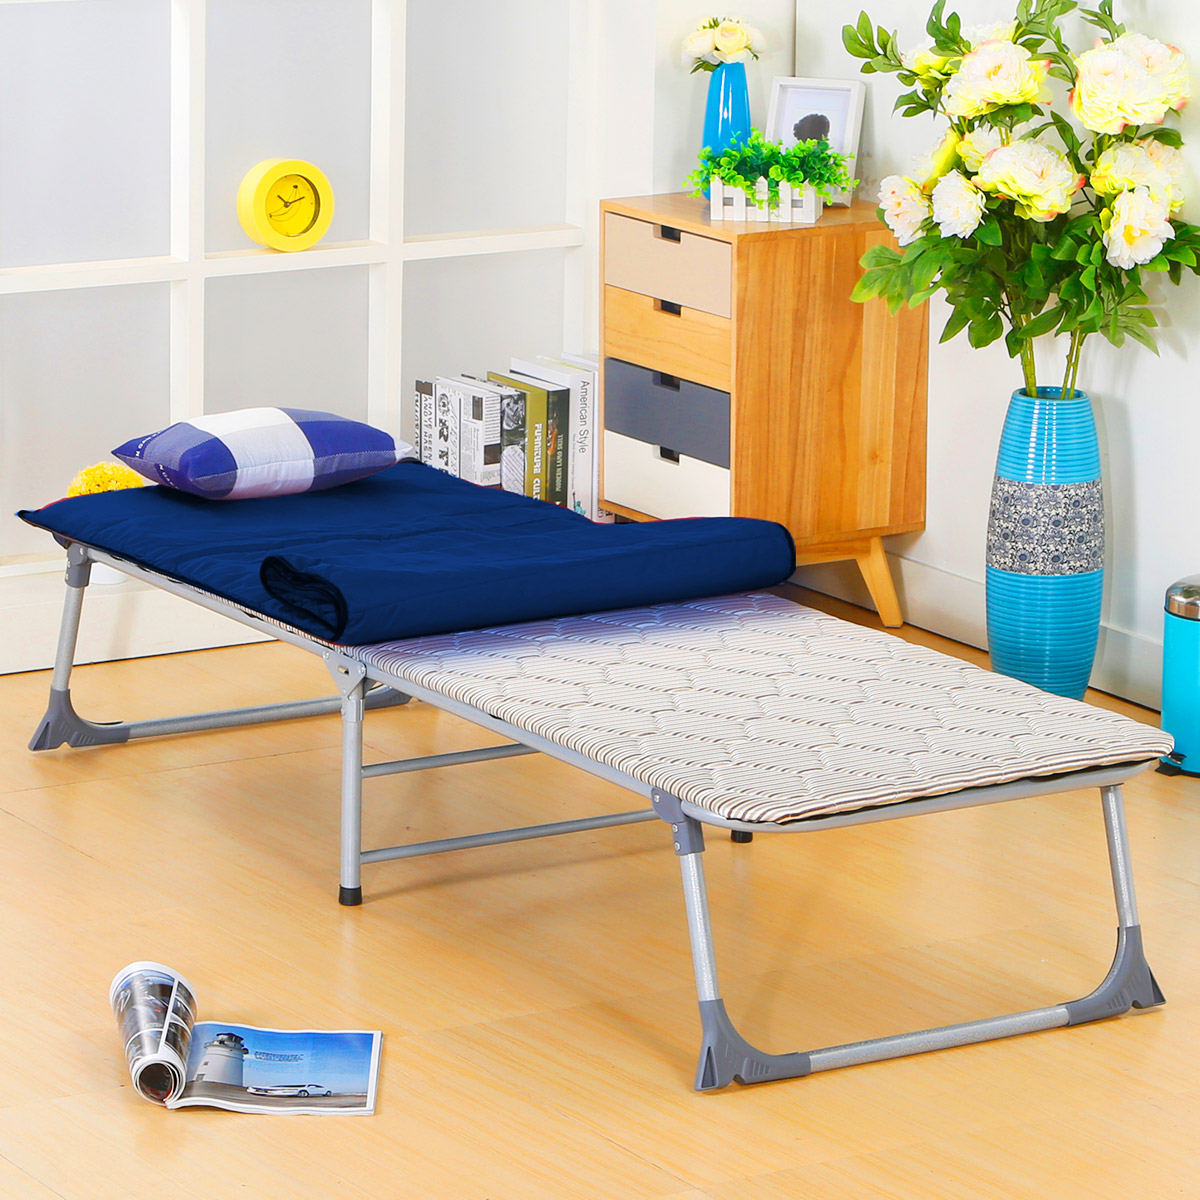 Huama folding bed single bed hard plank bed thin sponge nap bed office nap bed Cots